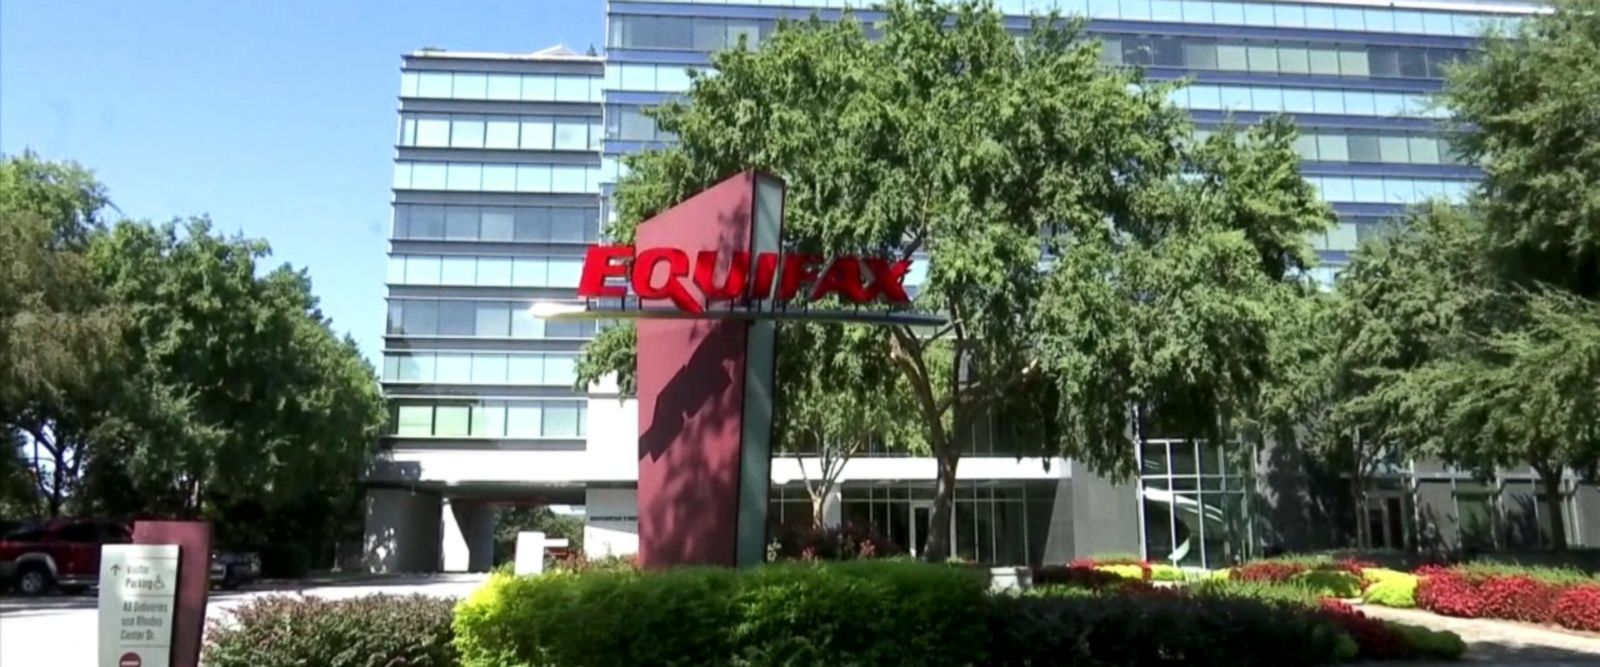 VIDEO: Equifax was breached months prior than admitted